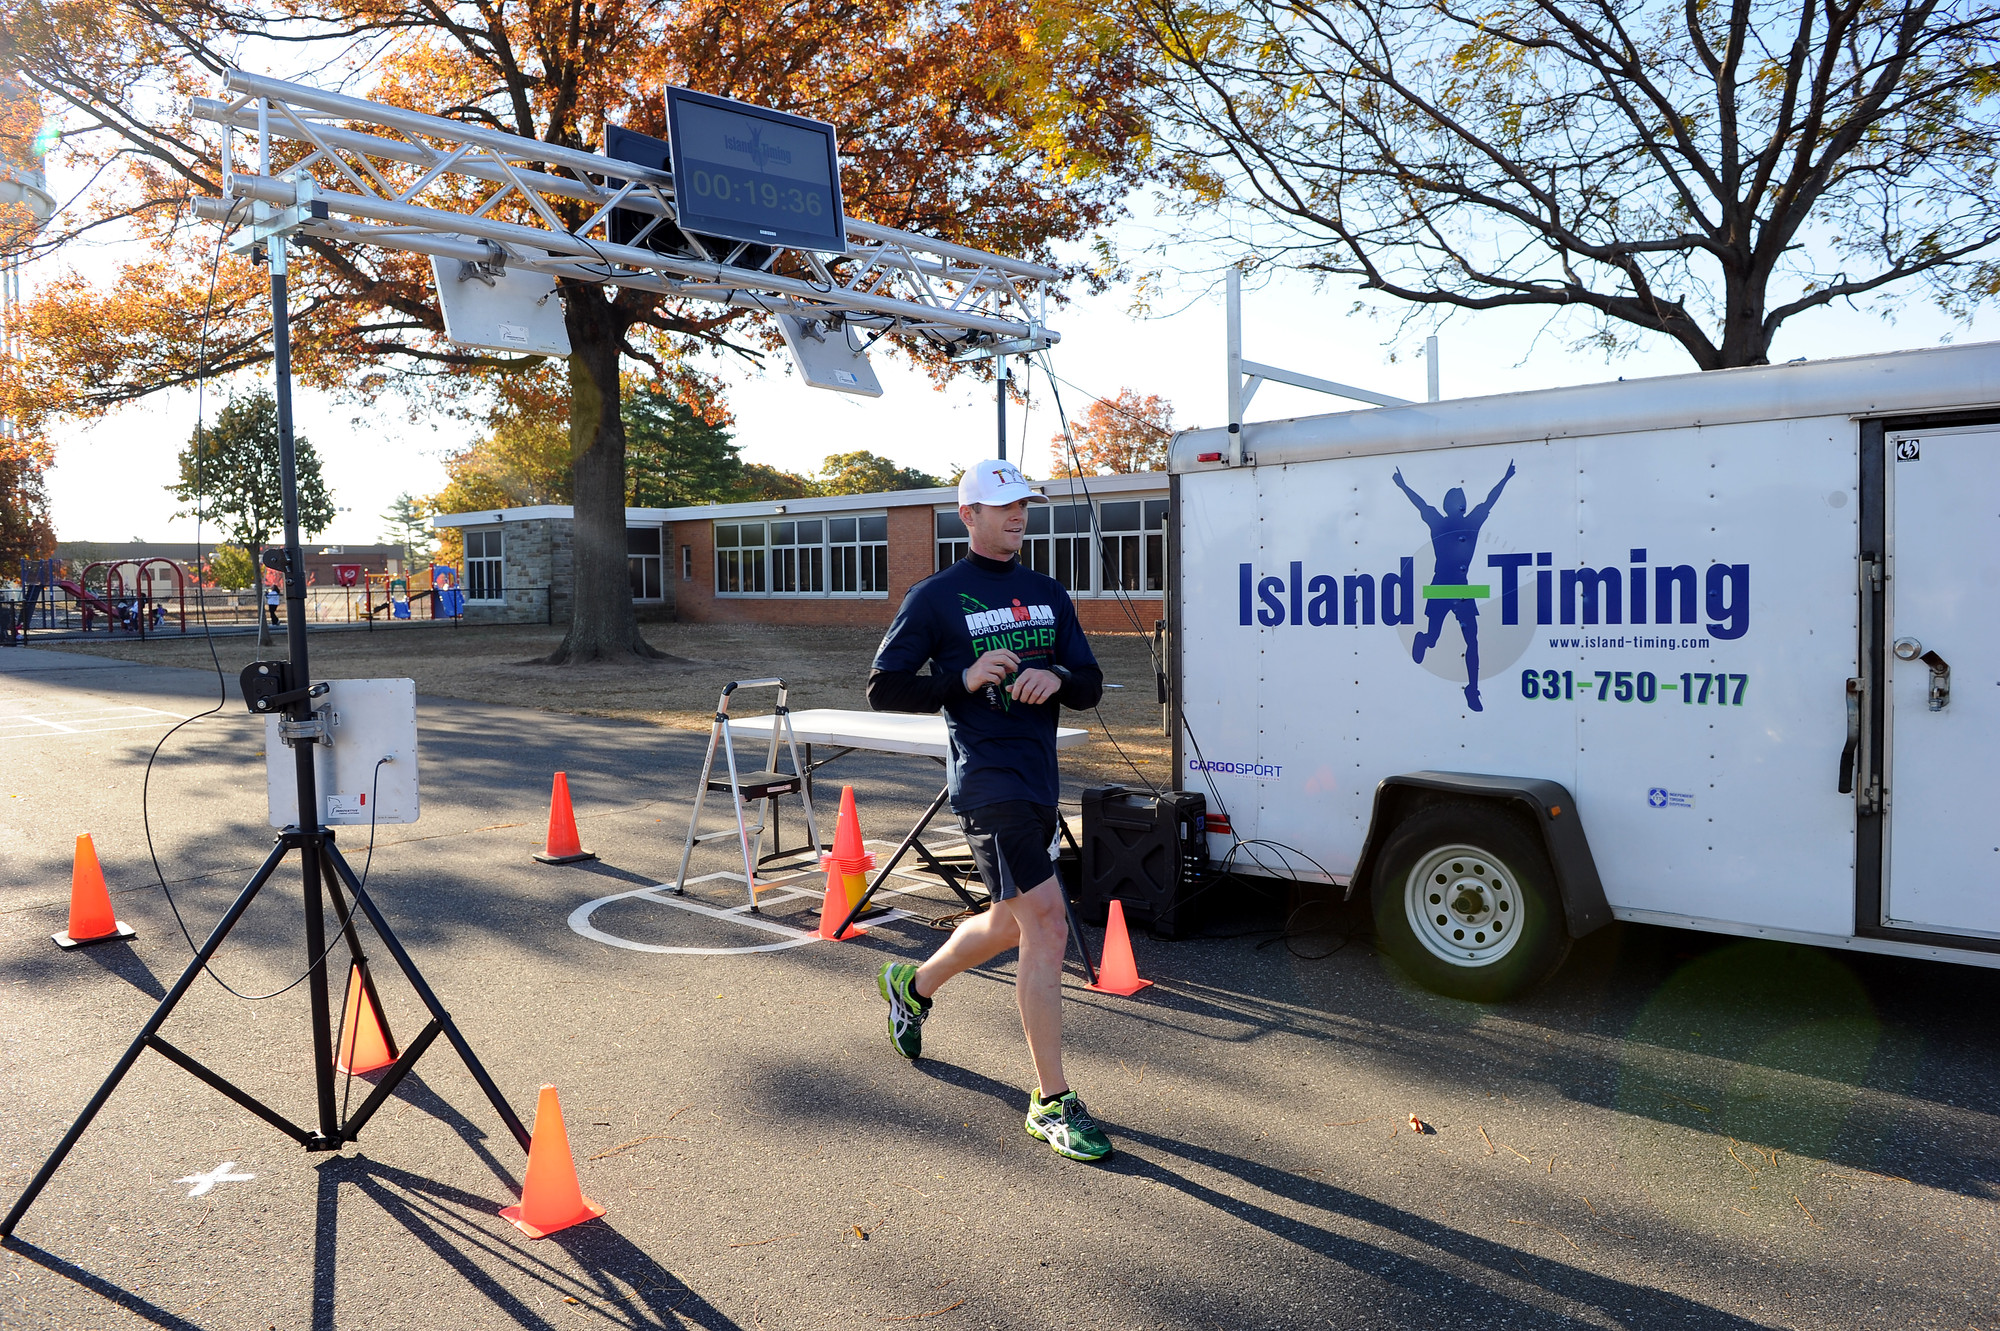 Joe Redmond, 33, of Rockaway Park was first to cross the finish line at 19 minutes, 35 seconds